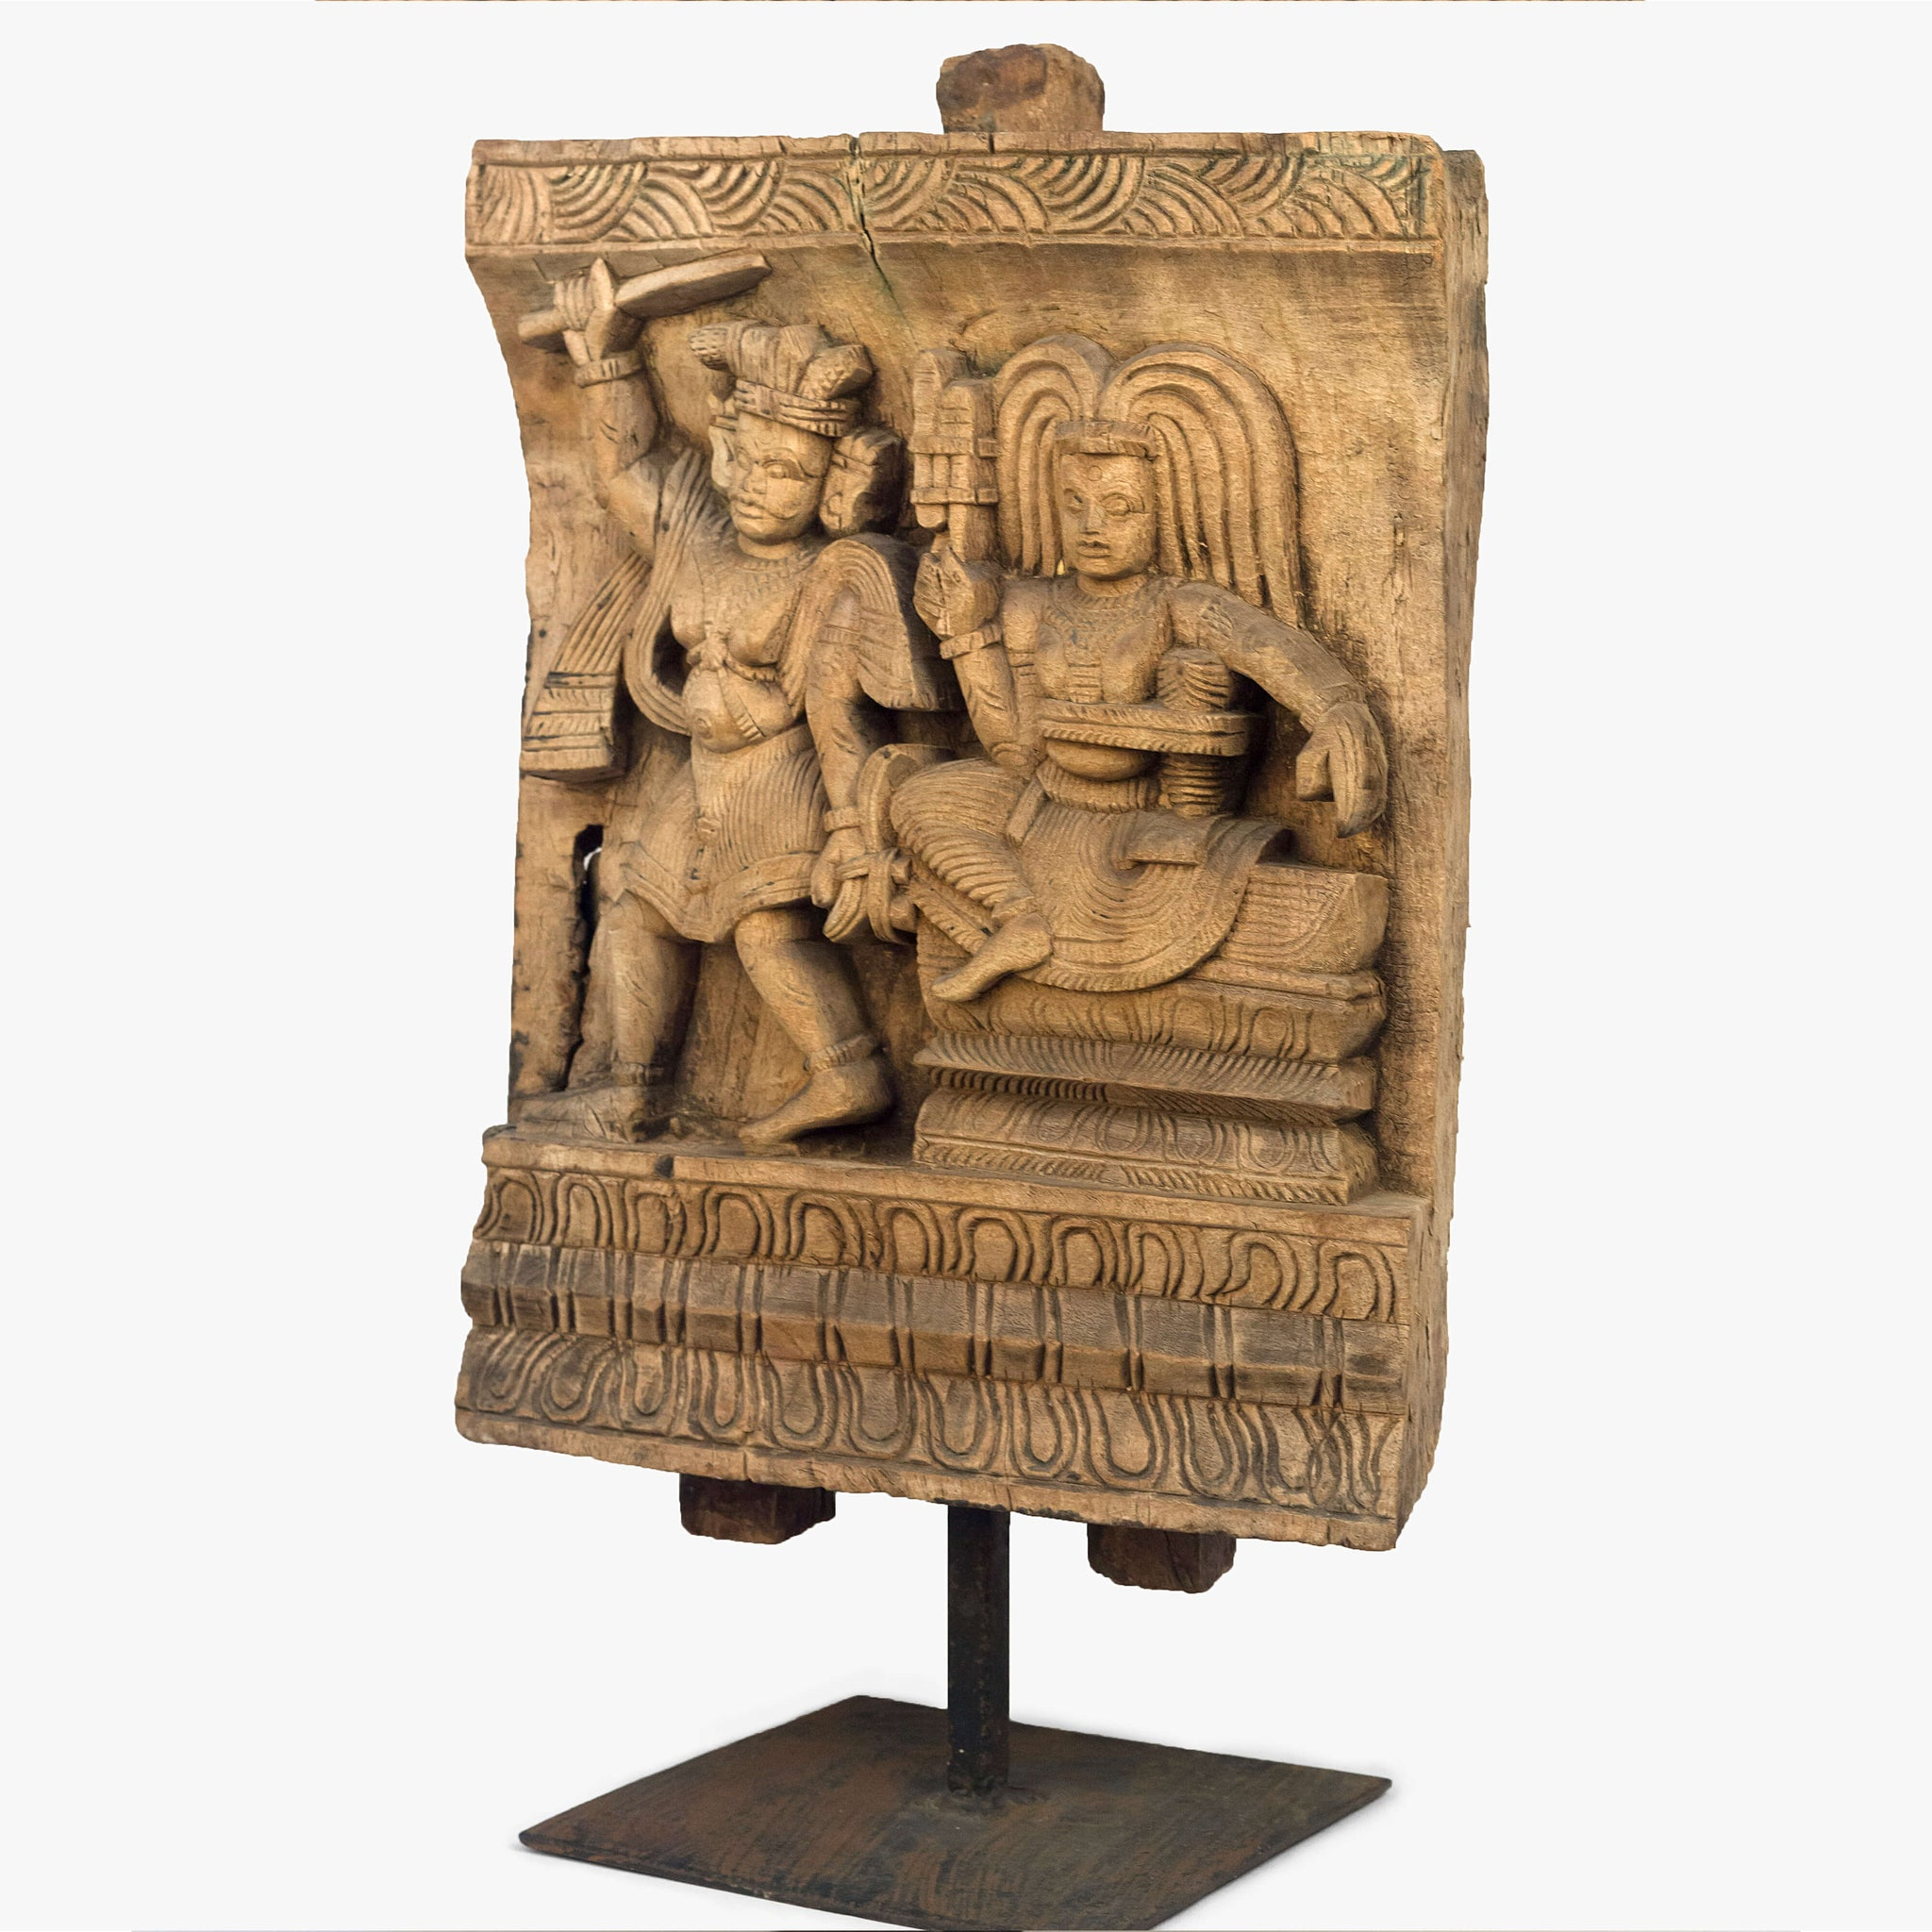 FINE WOODEN CARVING OF AIYANAR